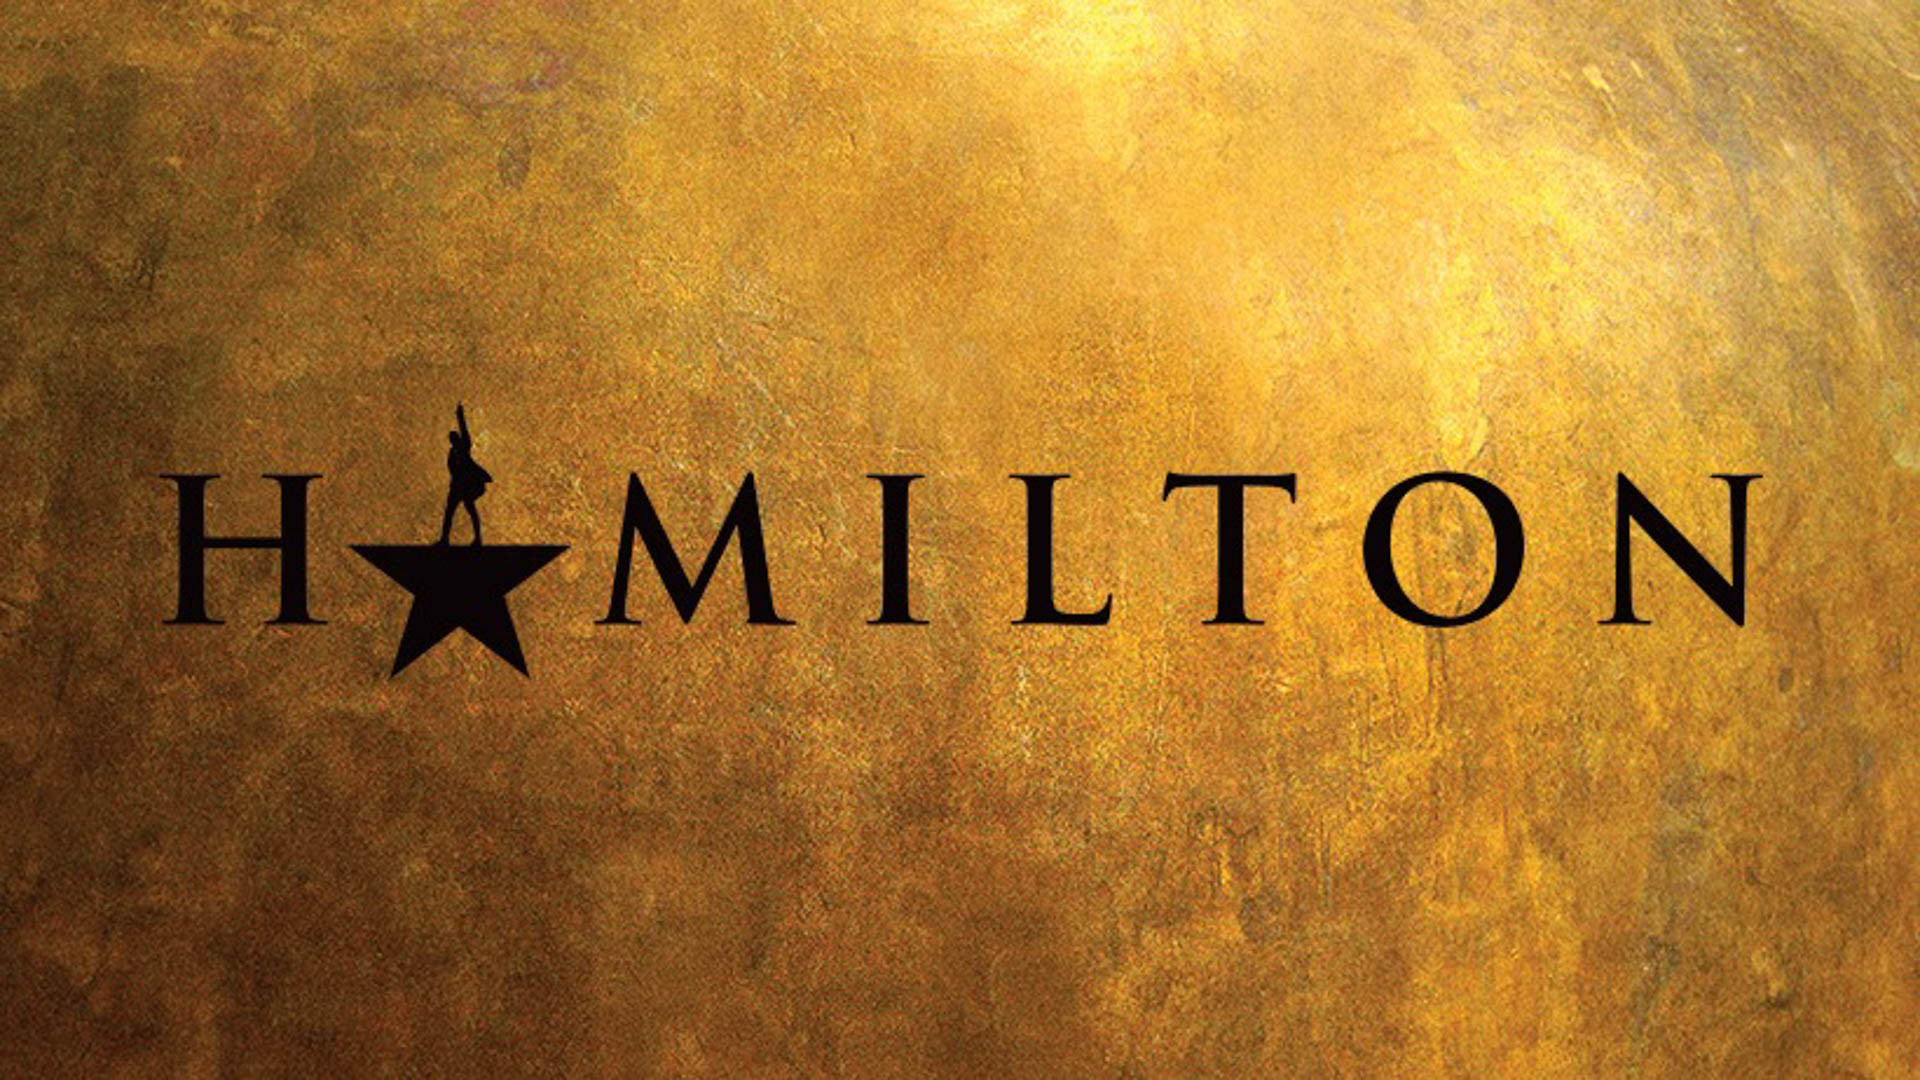 Free Download 78 Hamilton Musical Wallpapers On Wallpaperplay 1920x1080 For Your Desktop Mobile Tablet Explore 29 Hamilton The Musical Wallpapers Hamilton The Musical Wallpapers Hamilton Musical Wallpaper Hamilton Musical Desktop Wallpaper